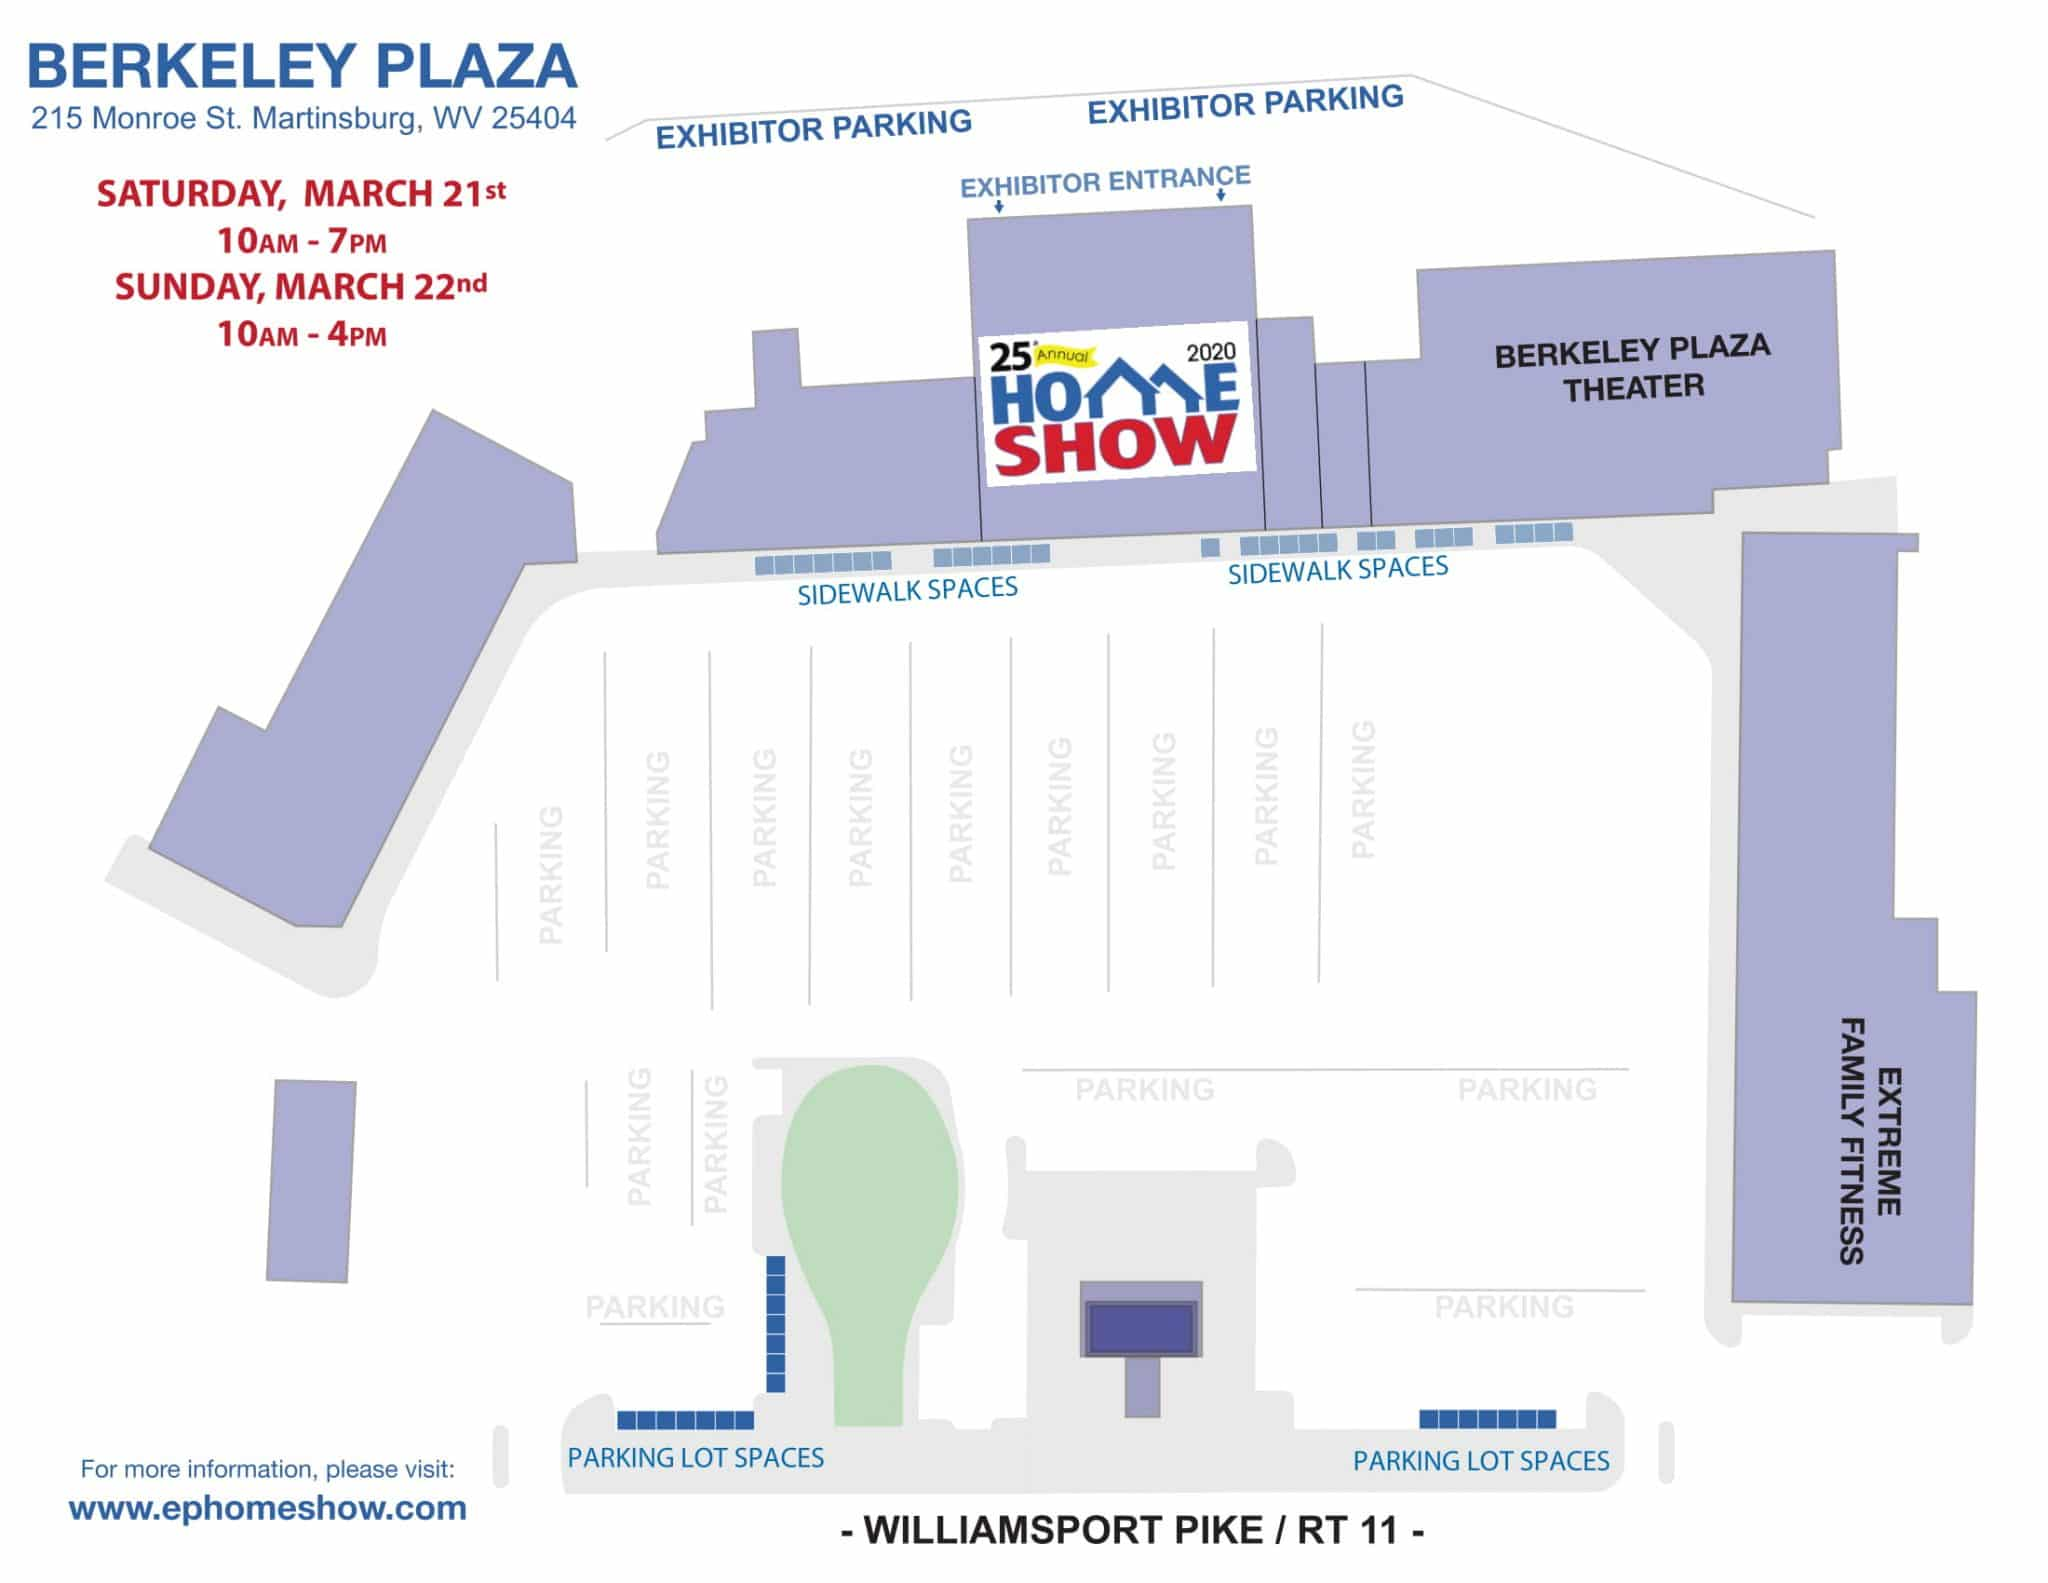 map of building where the home show will be